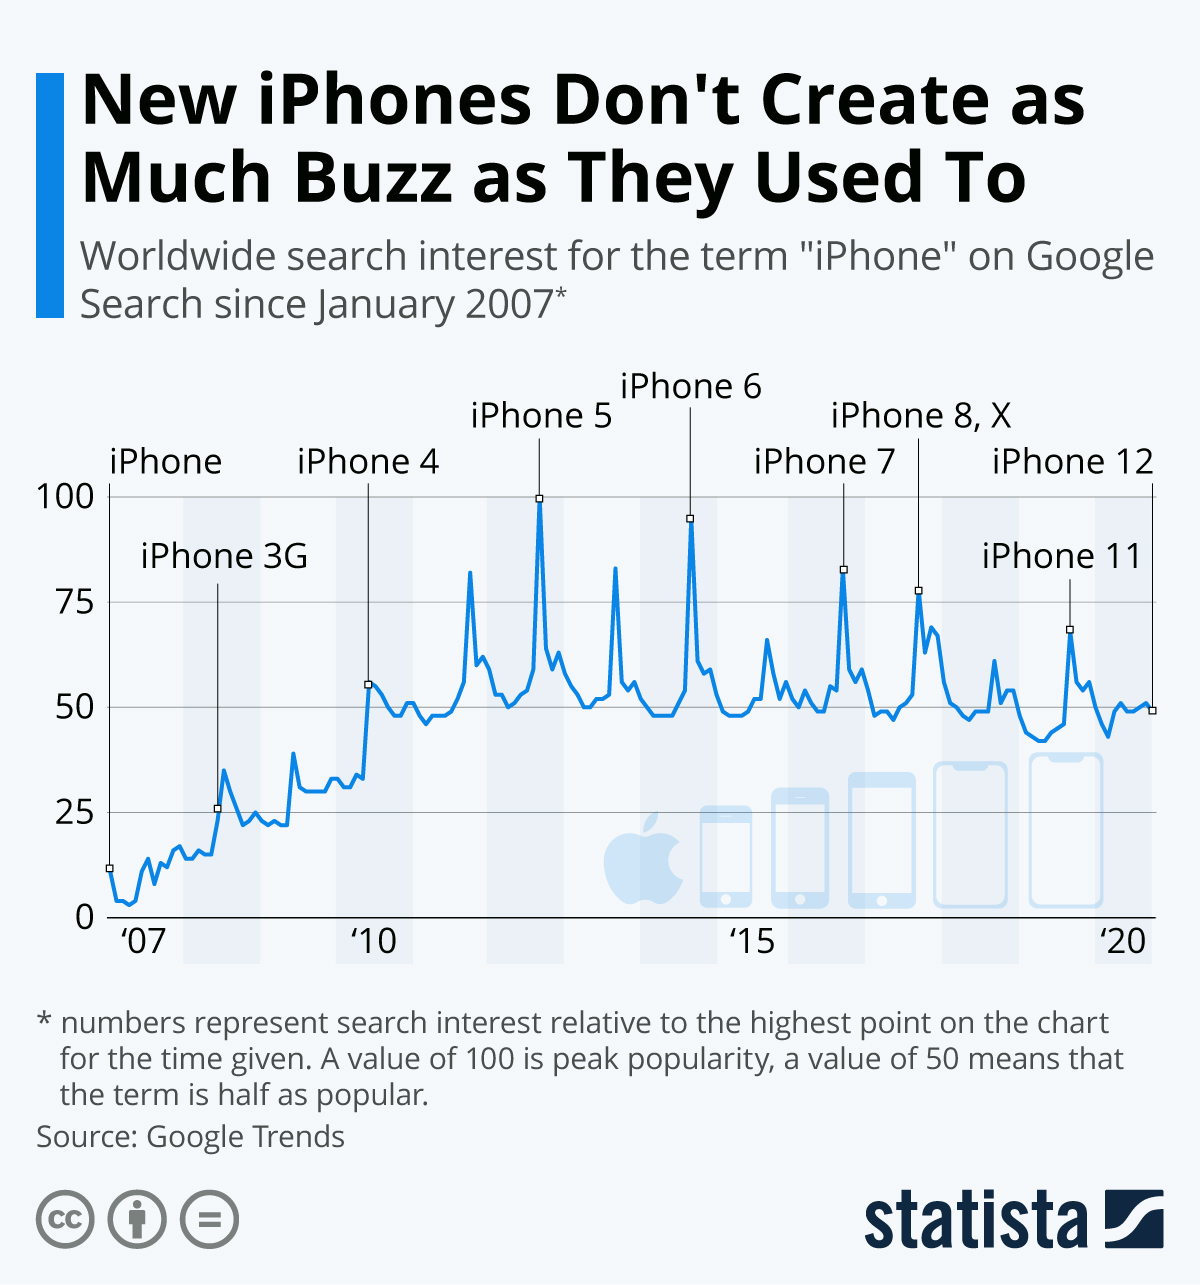 New iPhones Don't Create as Much Buzz as They Used To #infographic #iPhones